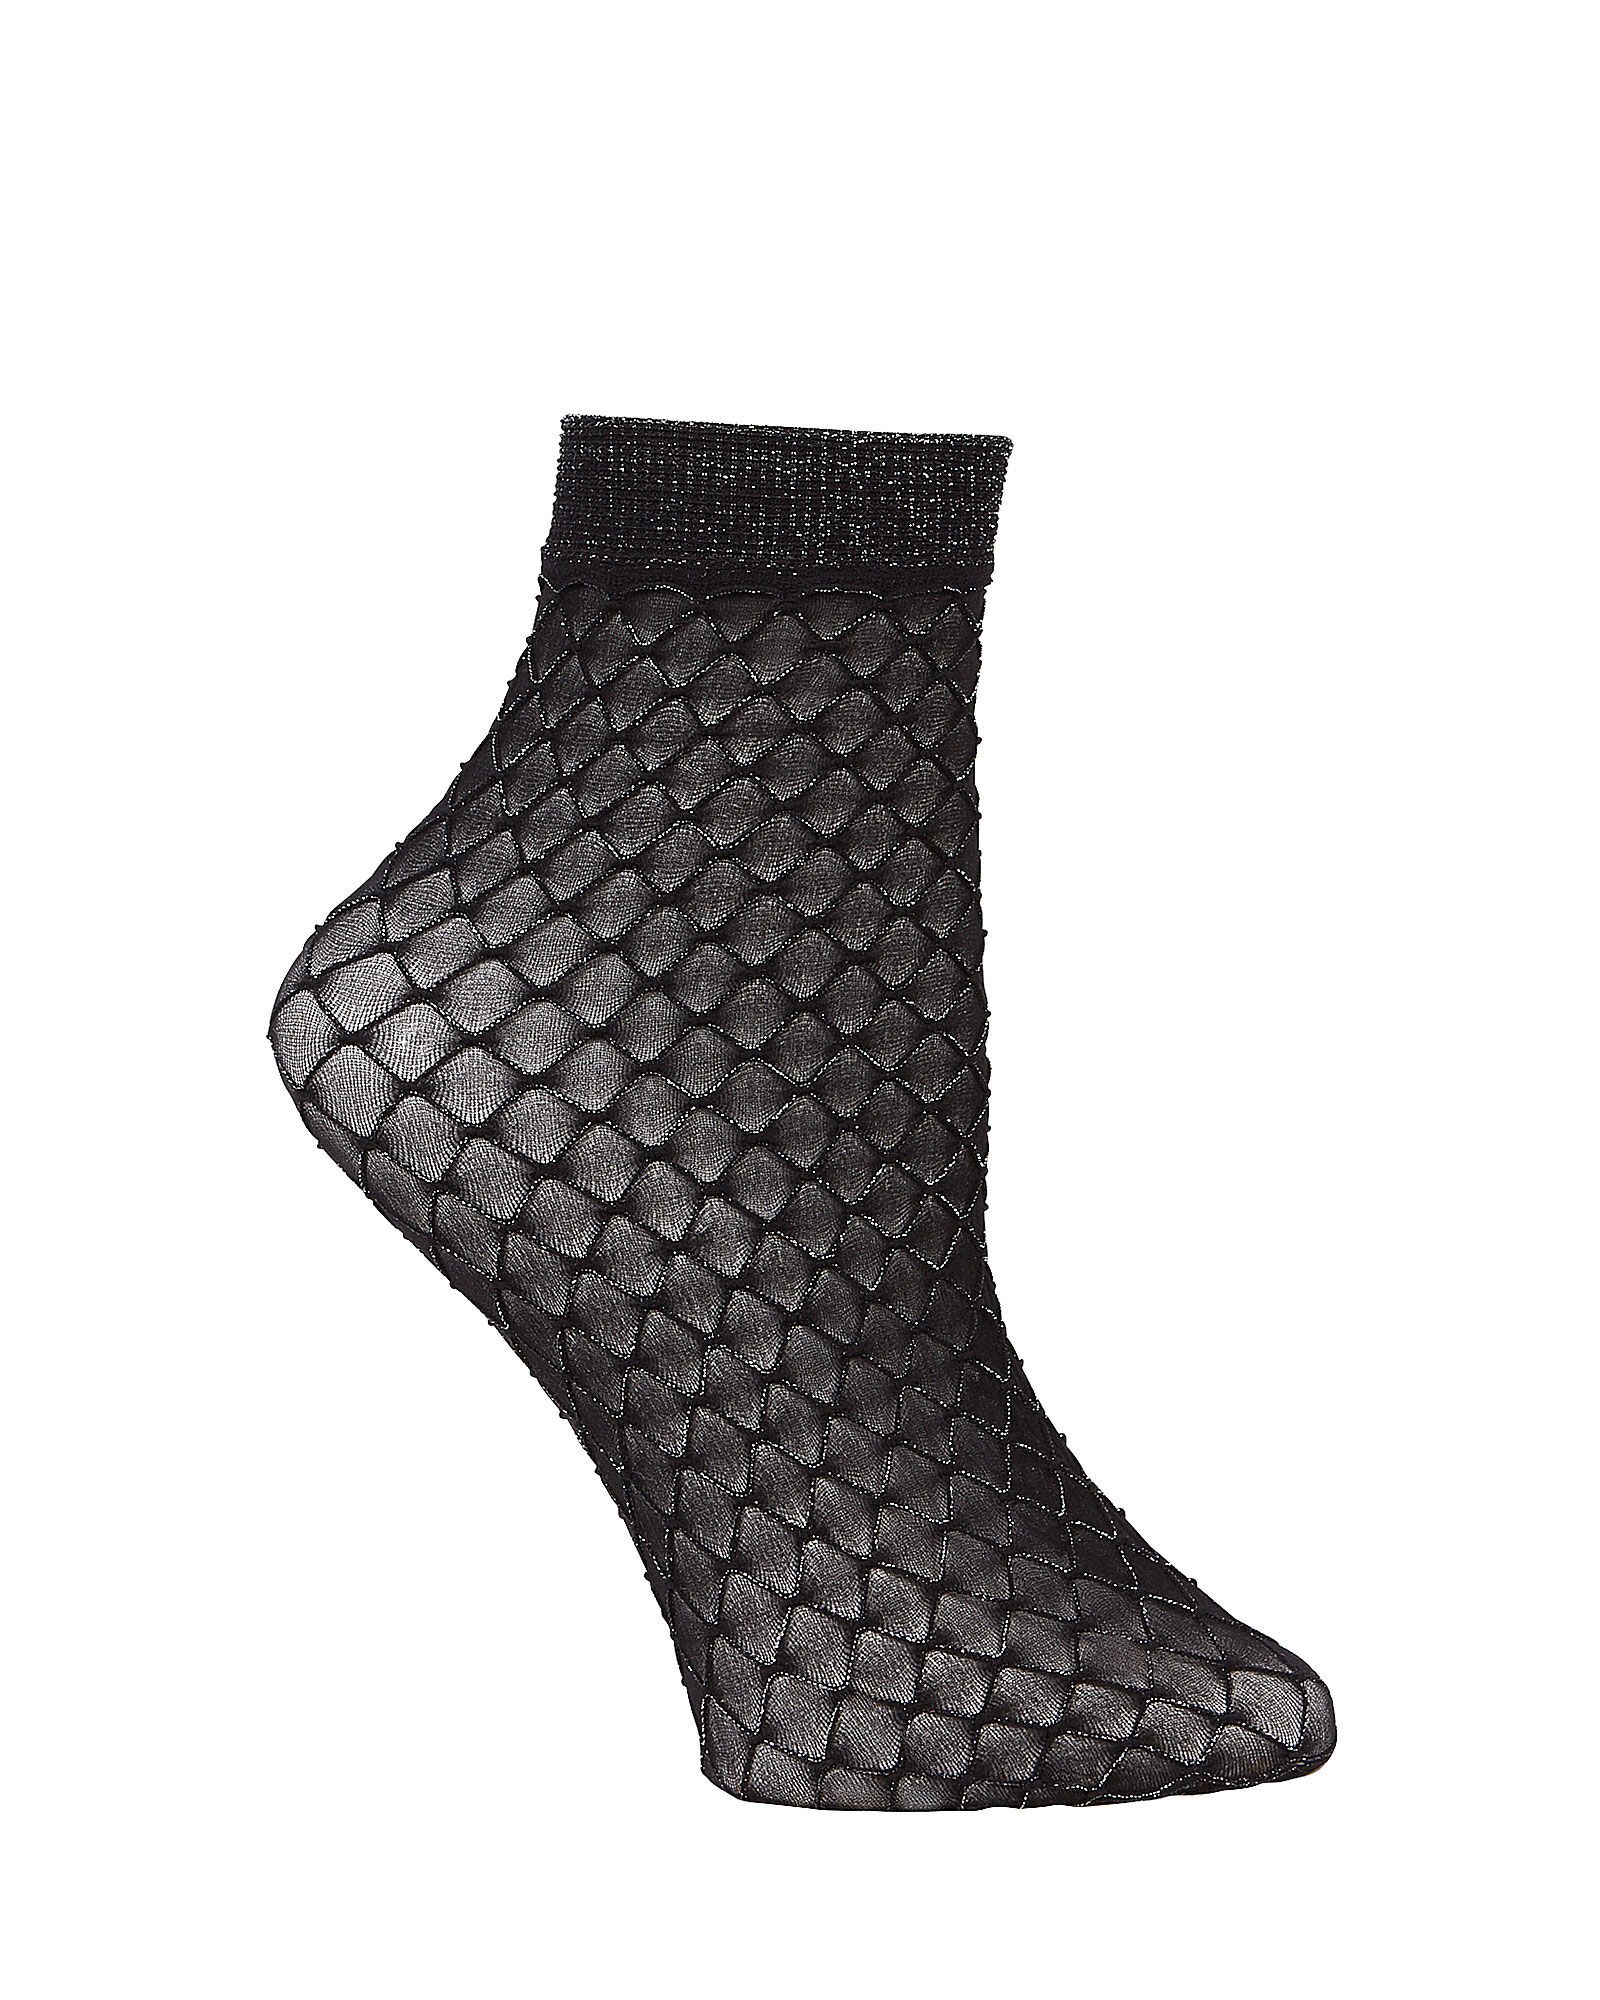 Metallic Double Net Socks, METALLIC BLACK, hi-res